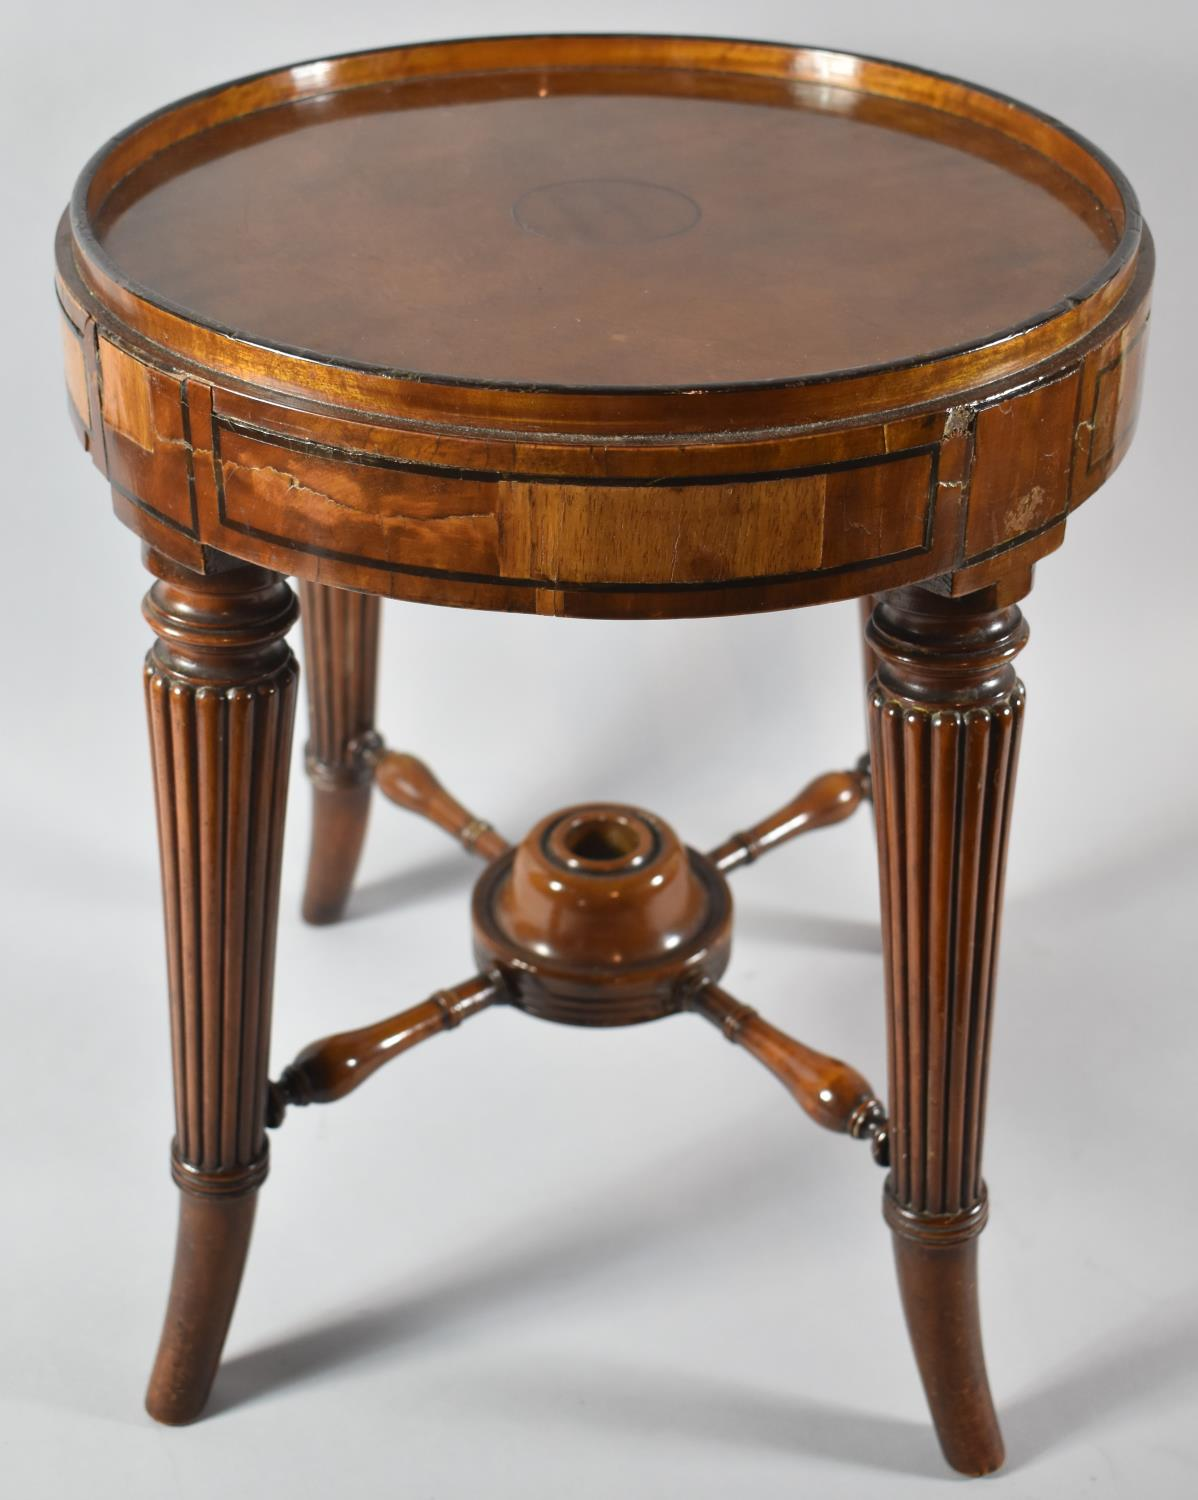 A Former Swivel Top Piano Stool Base Converted to Table with Turned Reeded Tapering Legs, 34cm